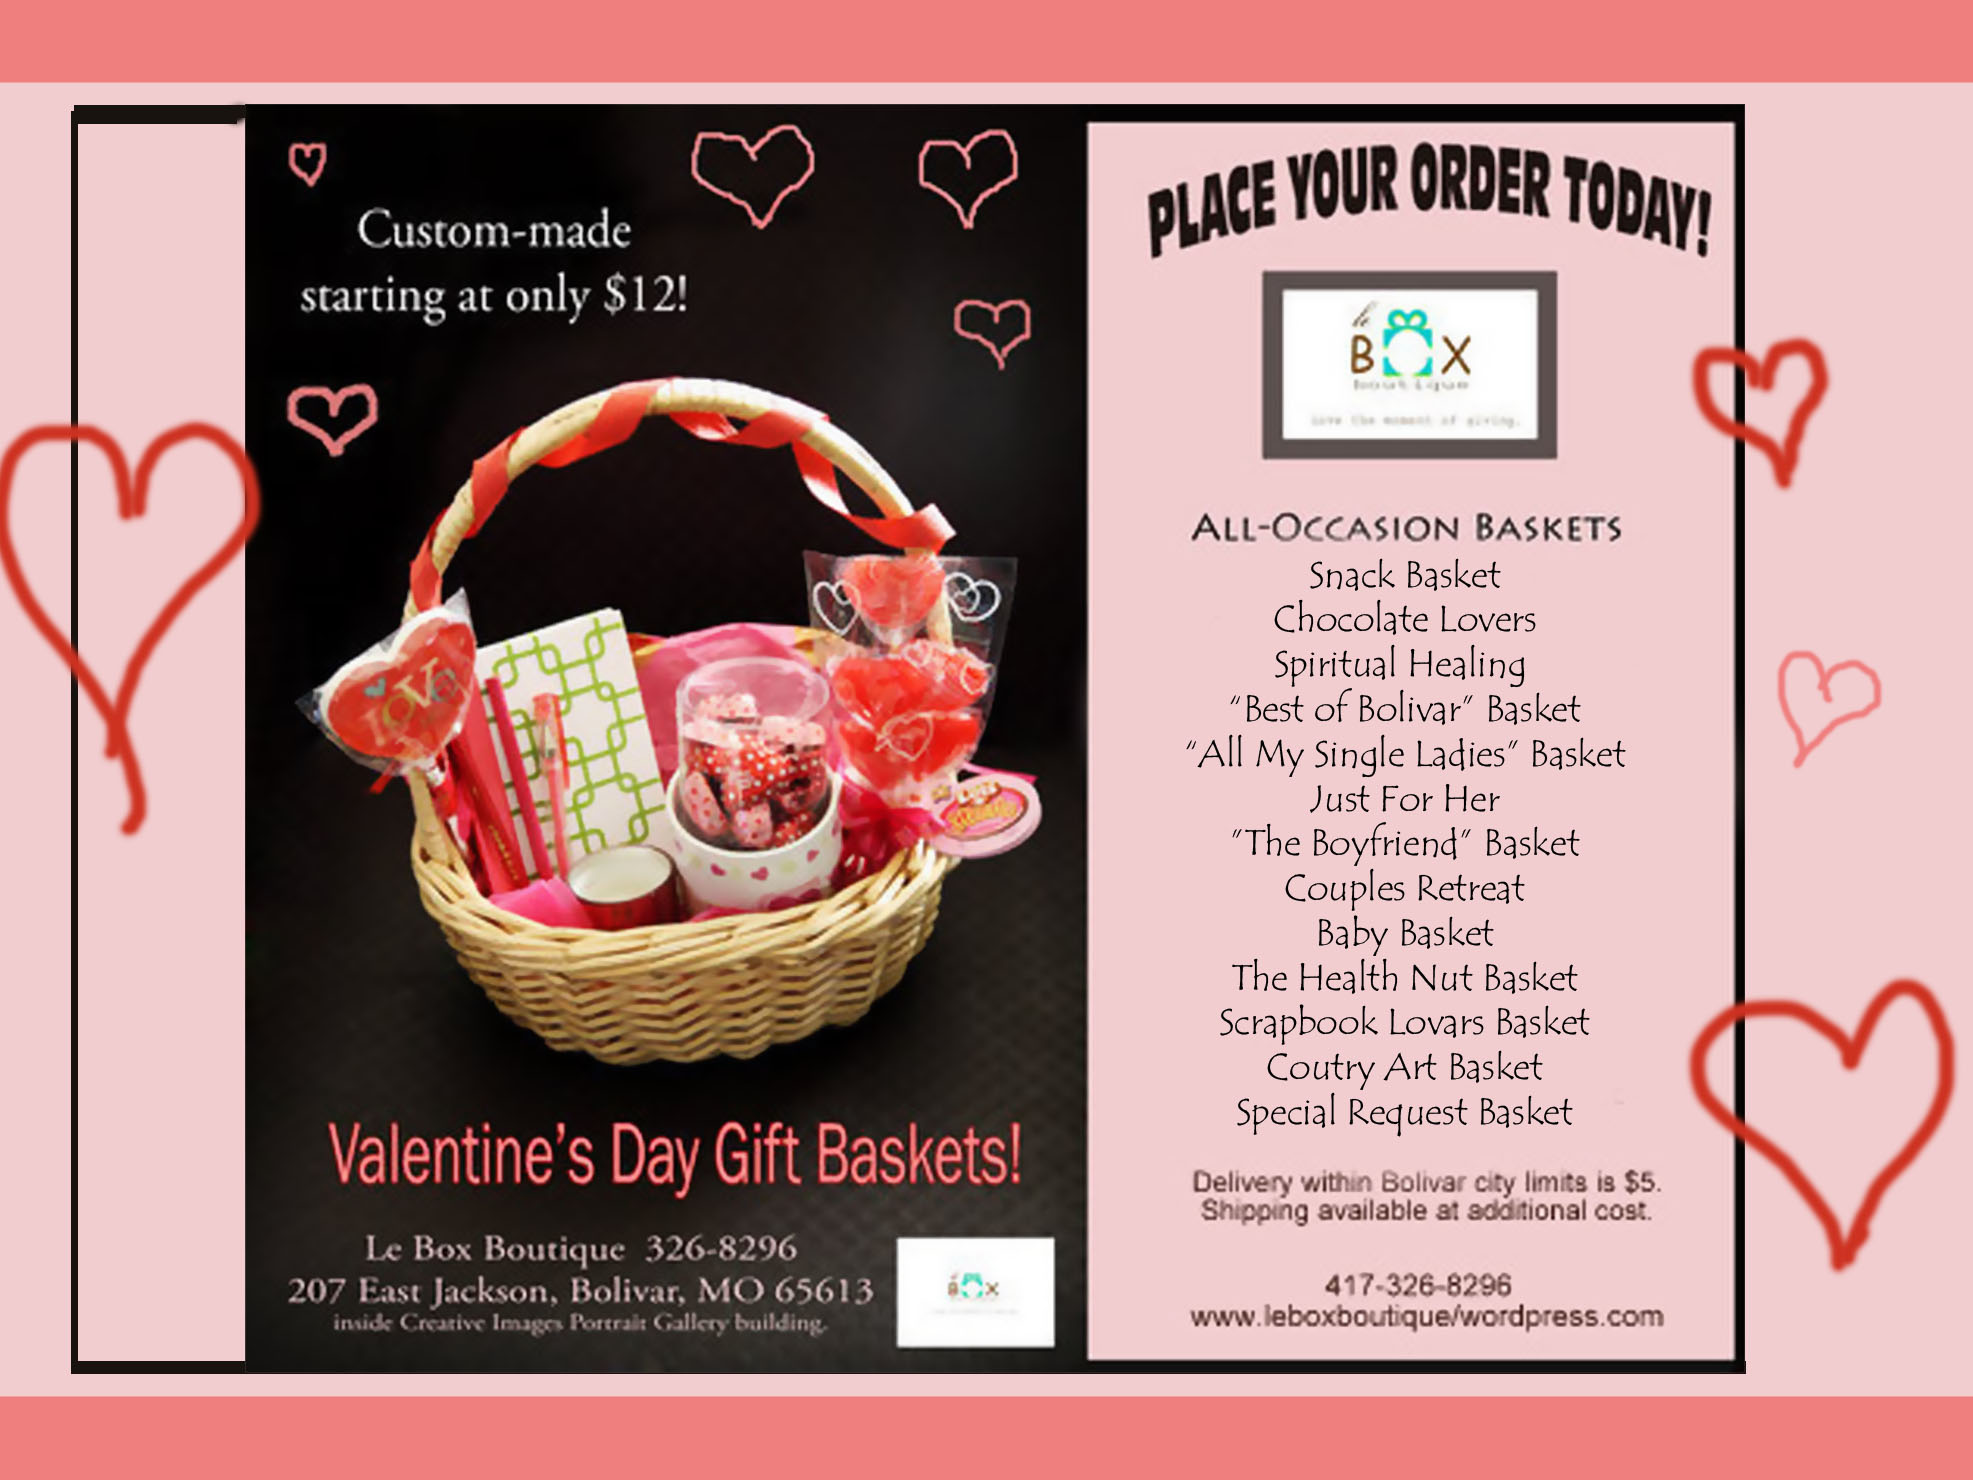 All Occasion Gift Baskets Le Box Boutique